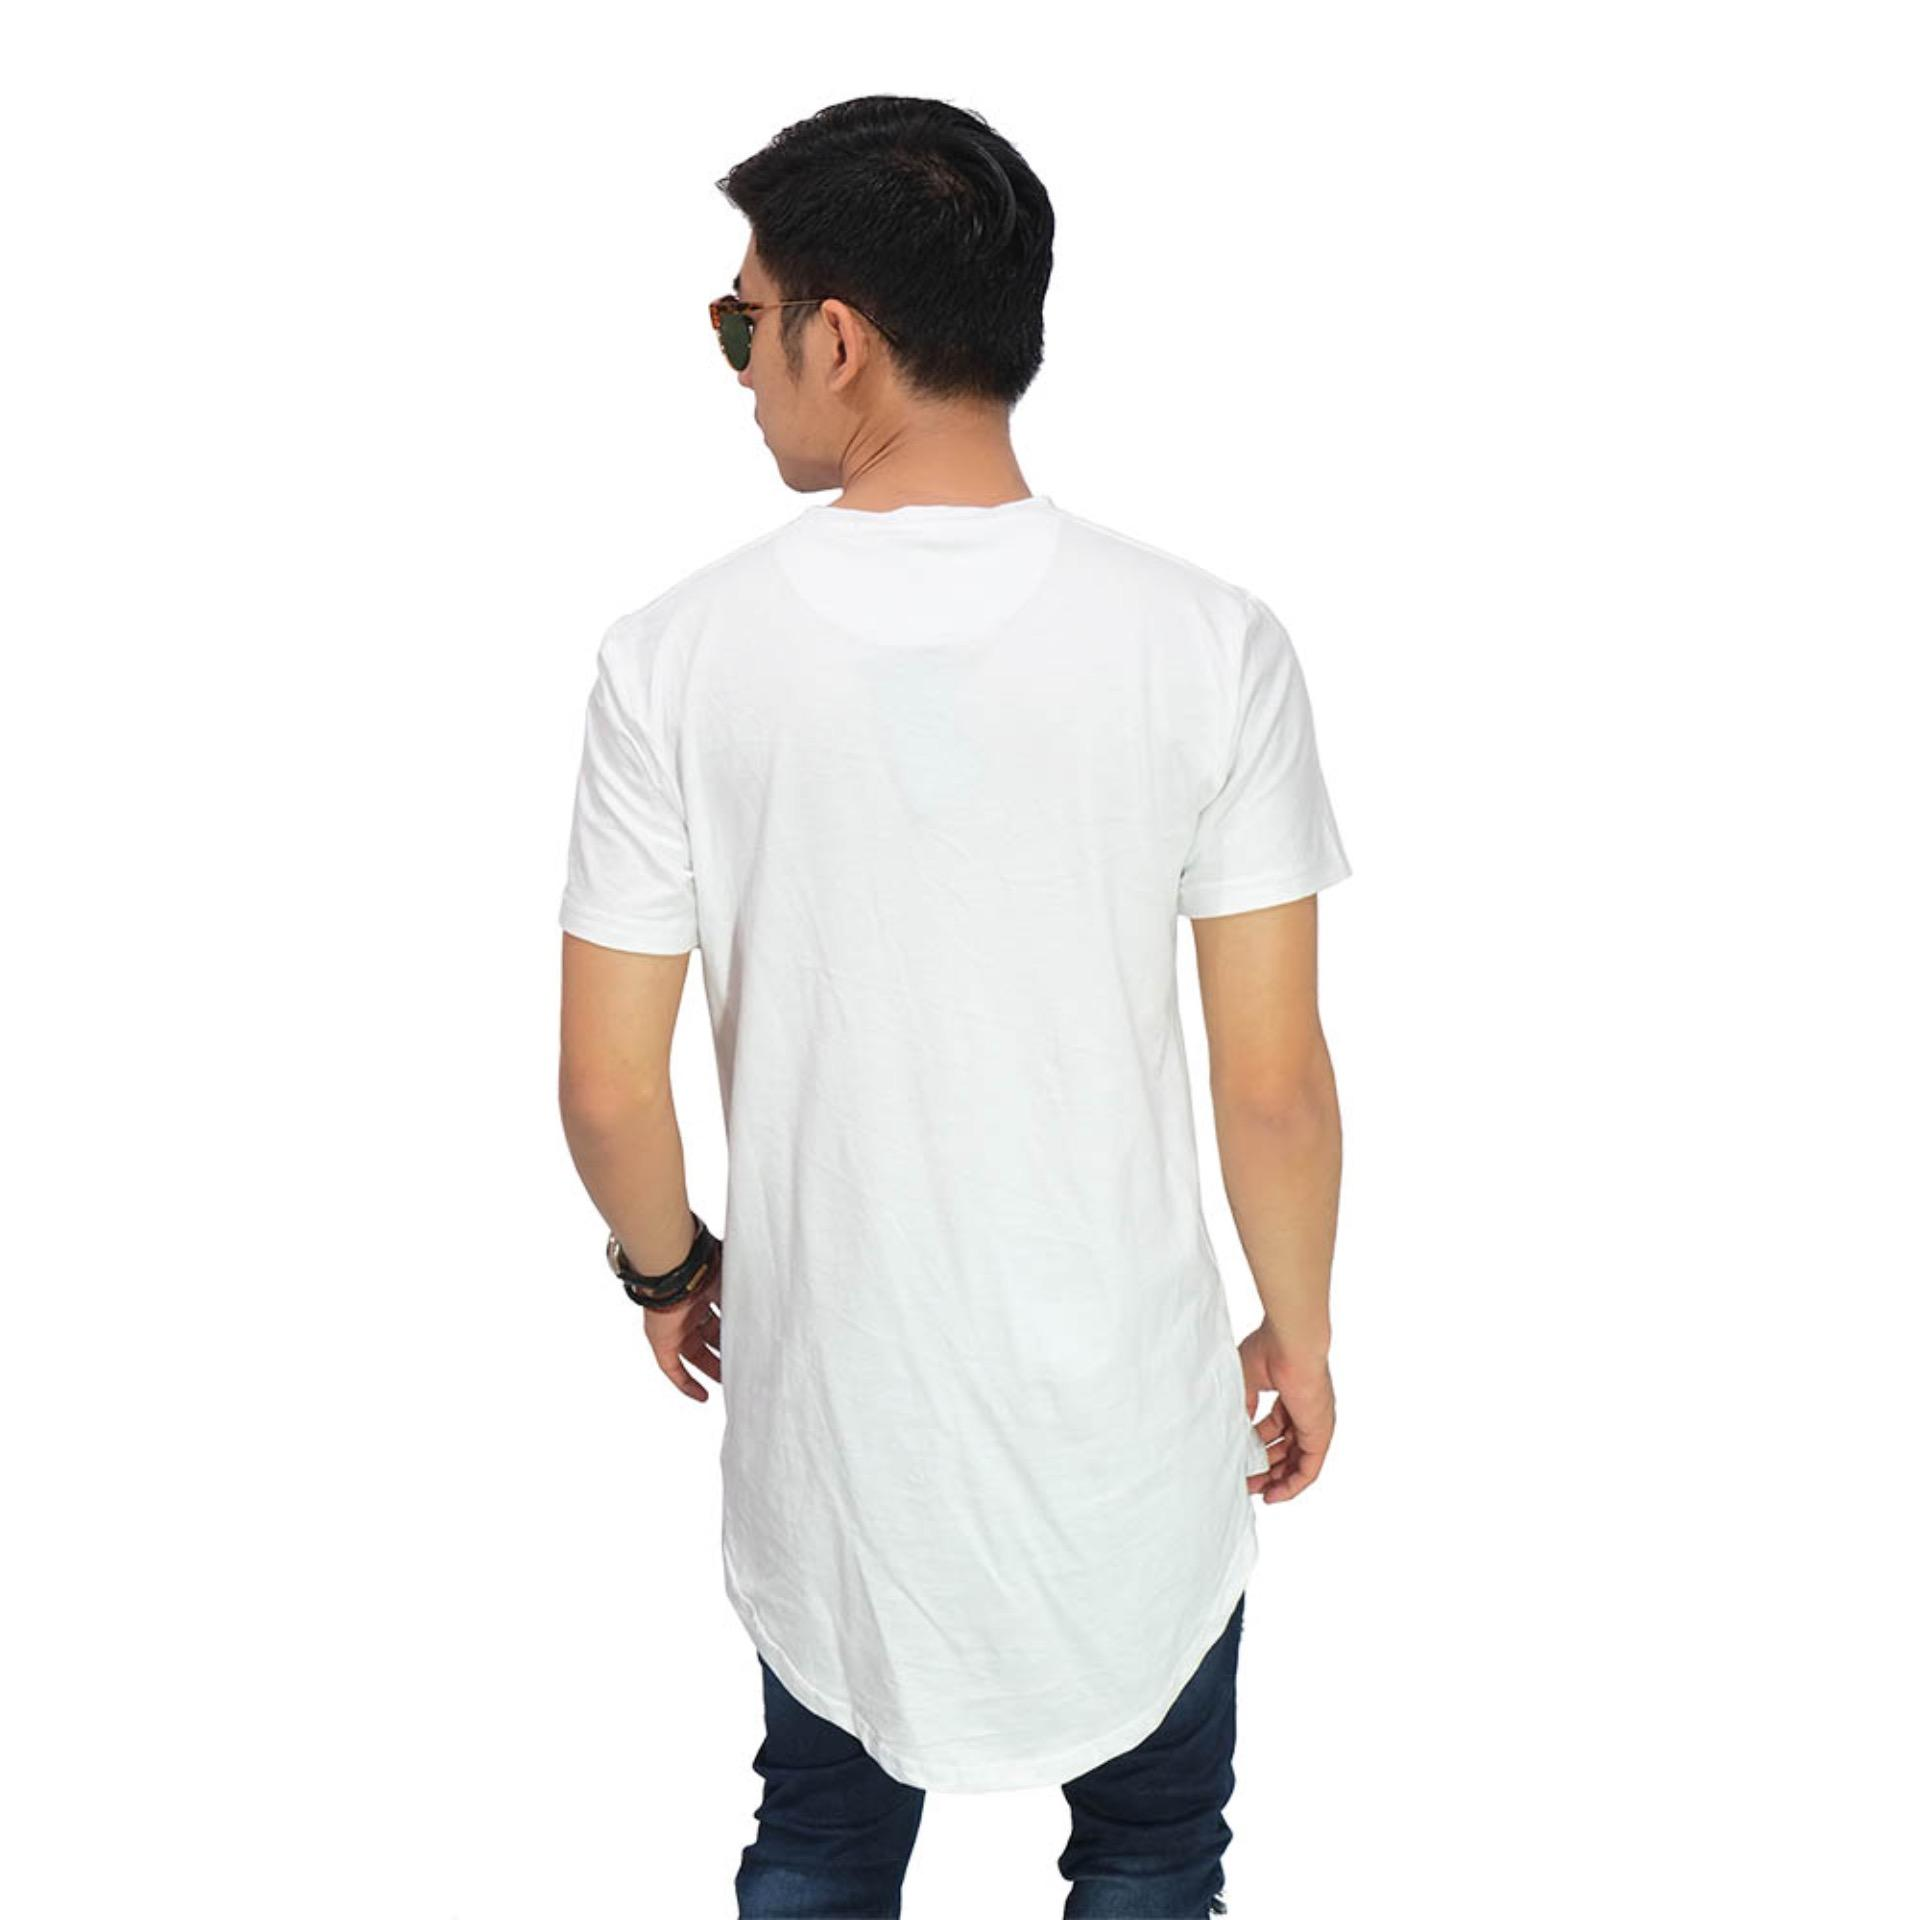 Frozenshop.com - Longline T-Shirt Basic White .